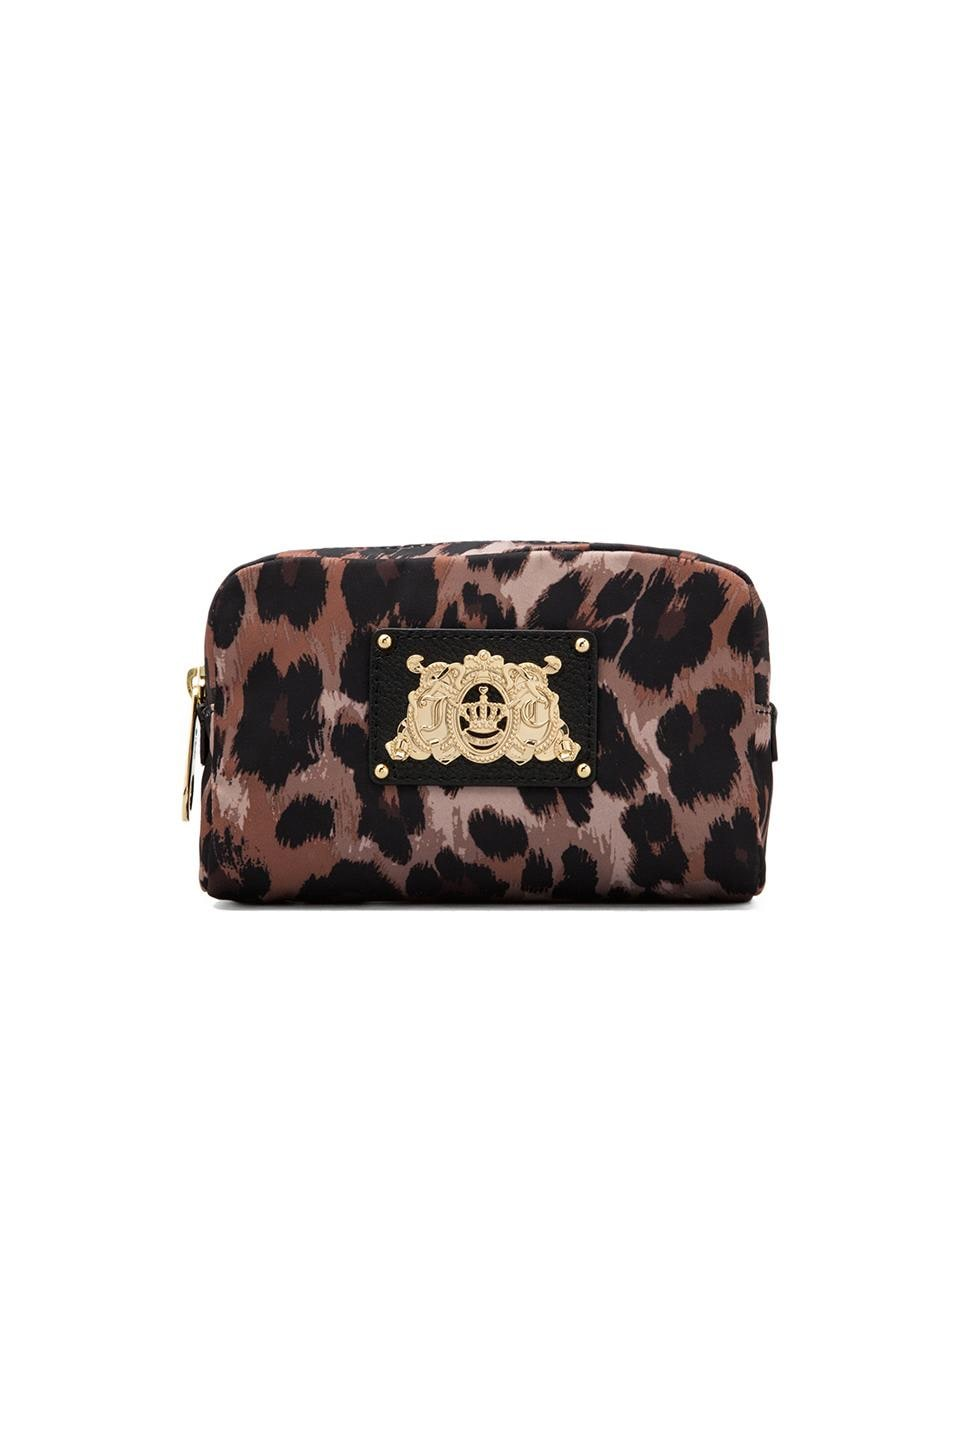 Juicy Couture Ongoing Nylon EZ Cosmetic in Brown Leopard